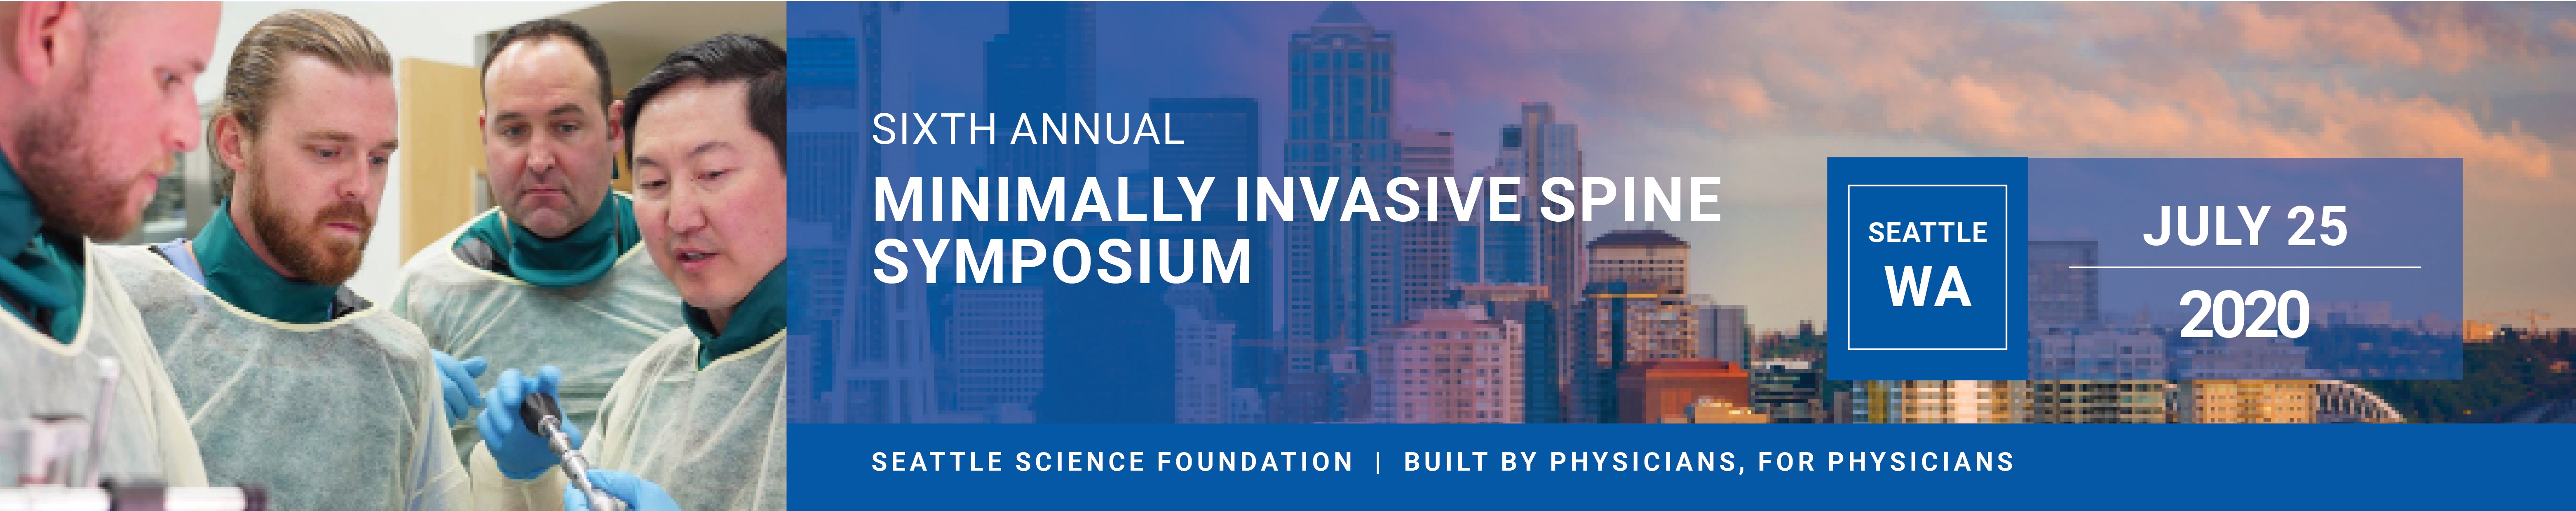 6th Annual Minimally Invasive Spine Symposium - Virtual! Banner